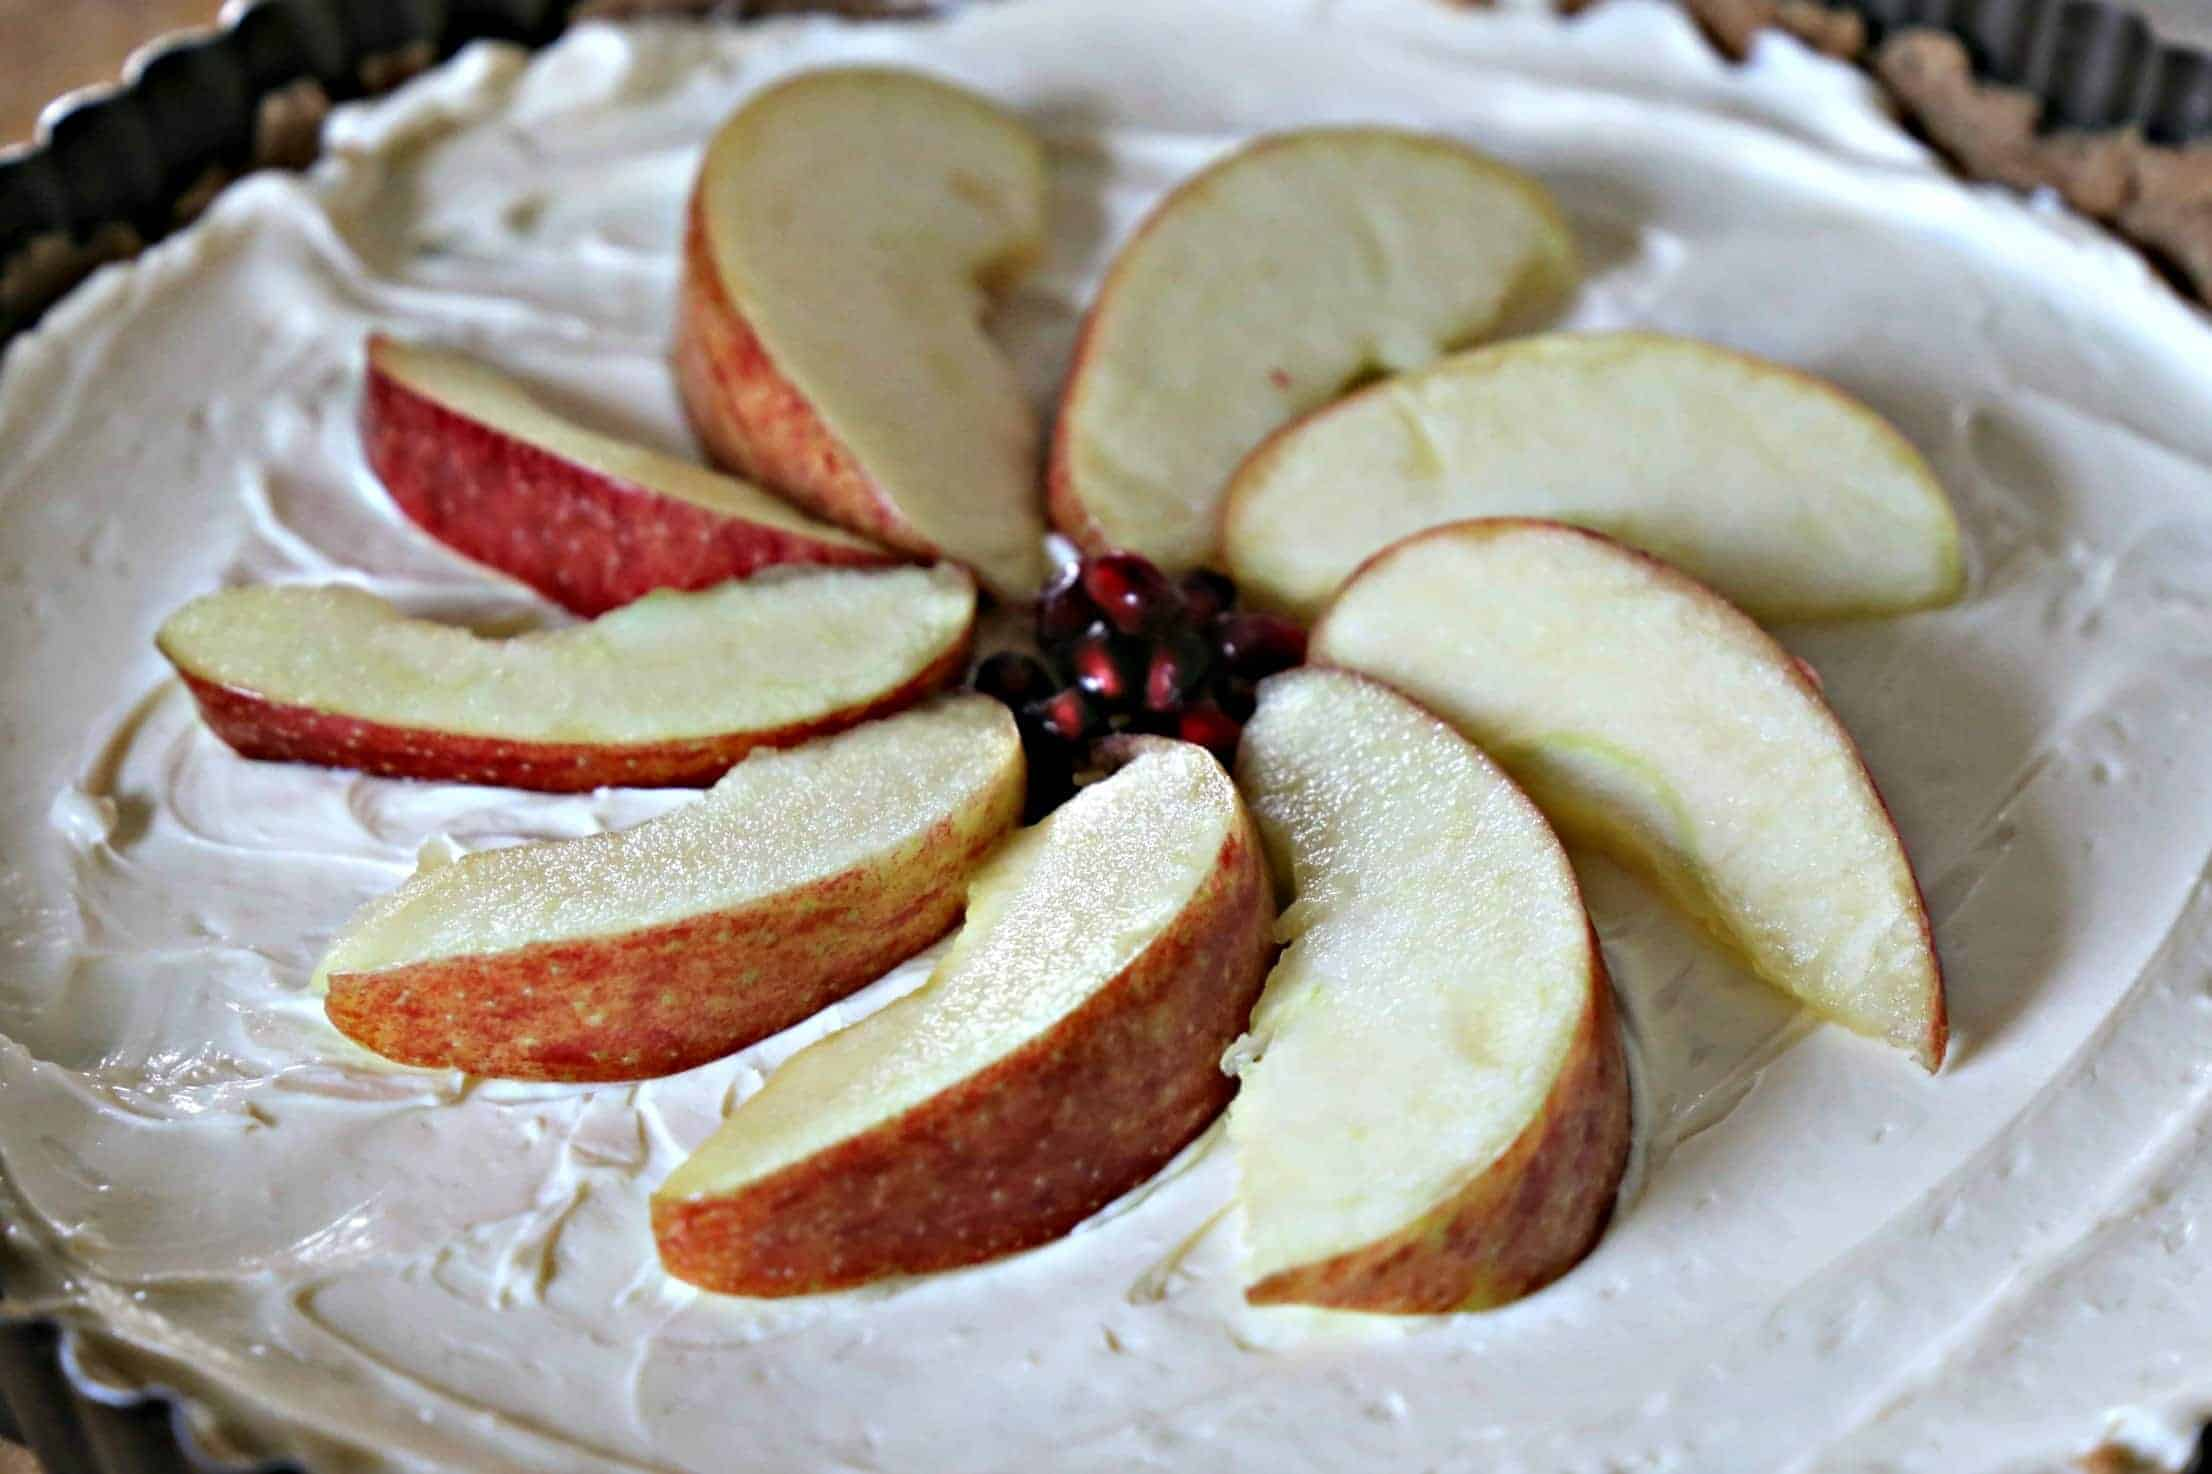 apples on top of cream cheese layer